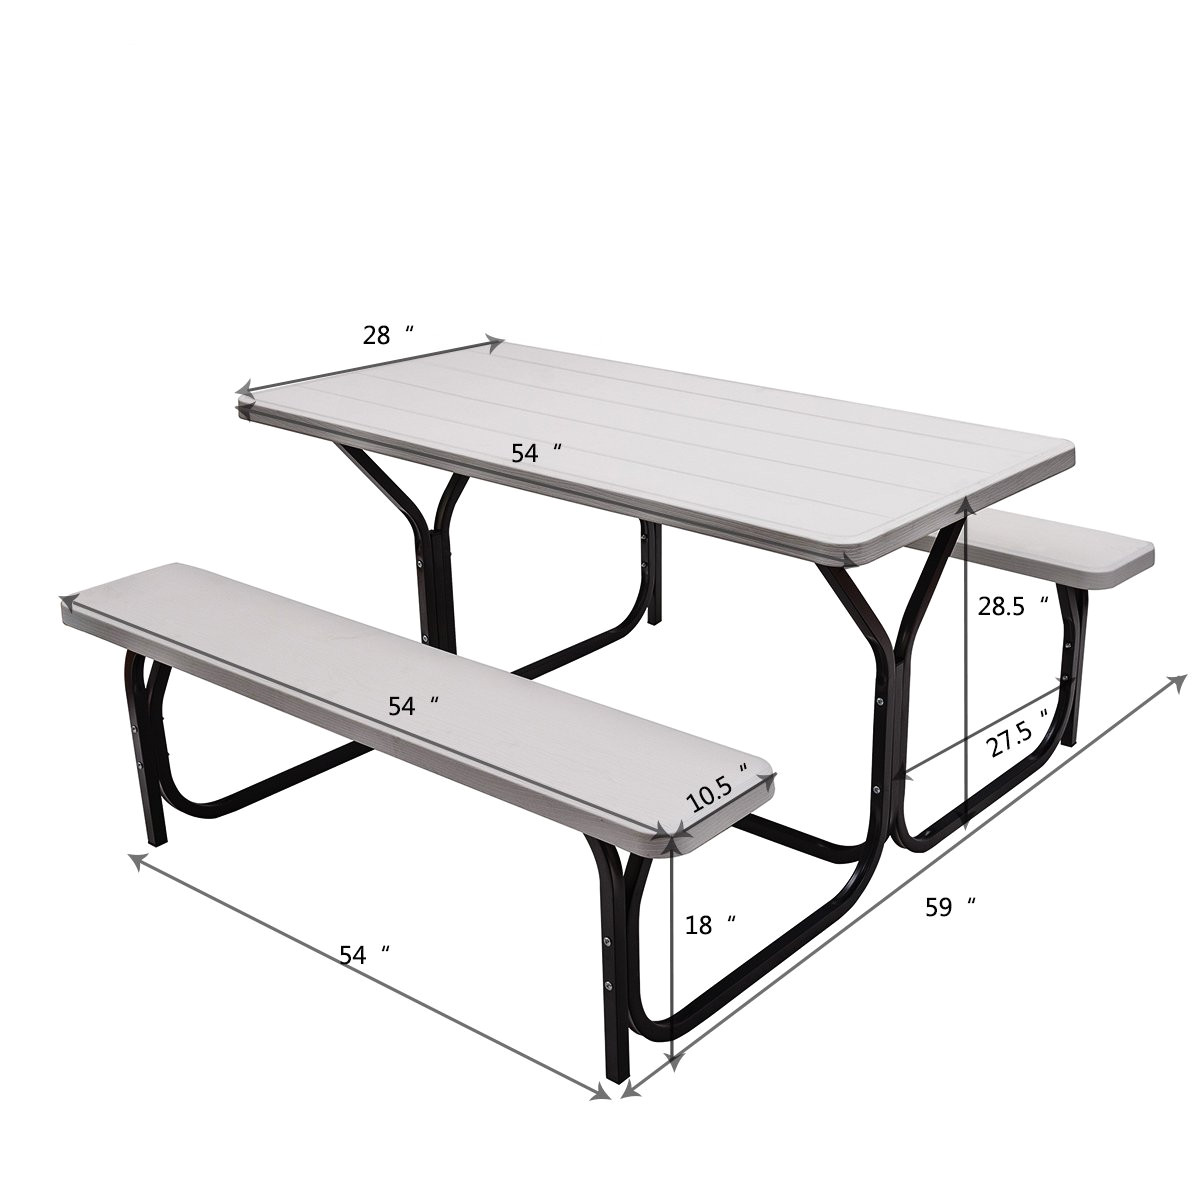 amazon com giantex picnic table bench set outdoor camping all weather metal base wood like texture backyard poolside dining party garden patio lawn deck